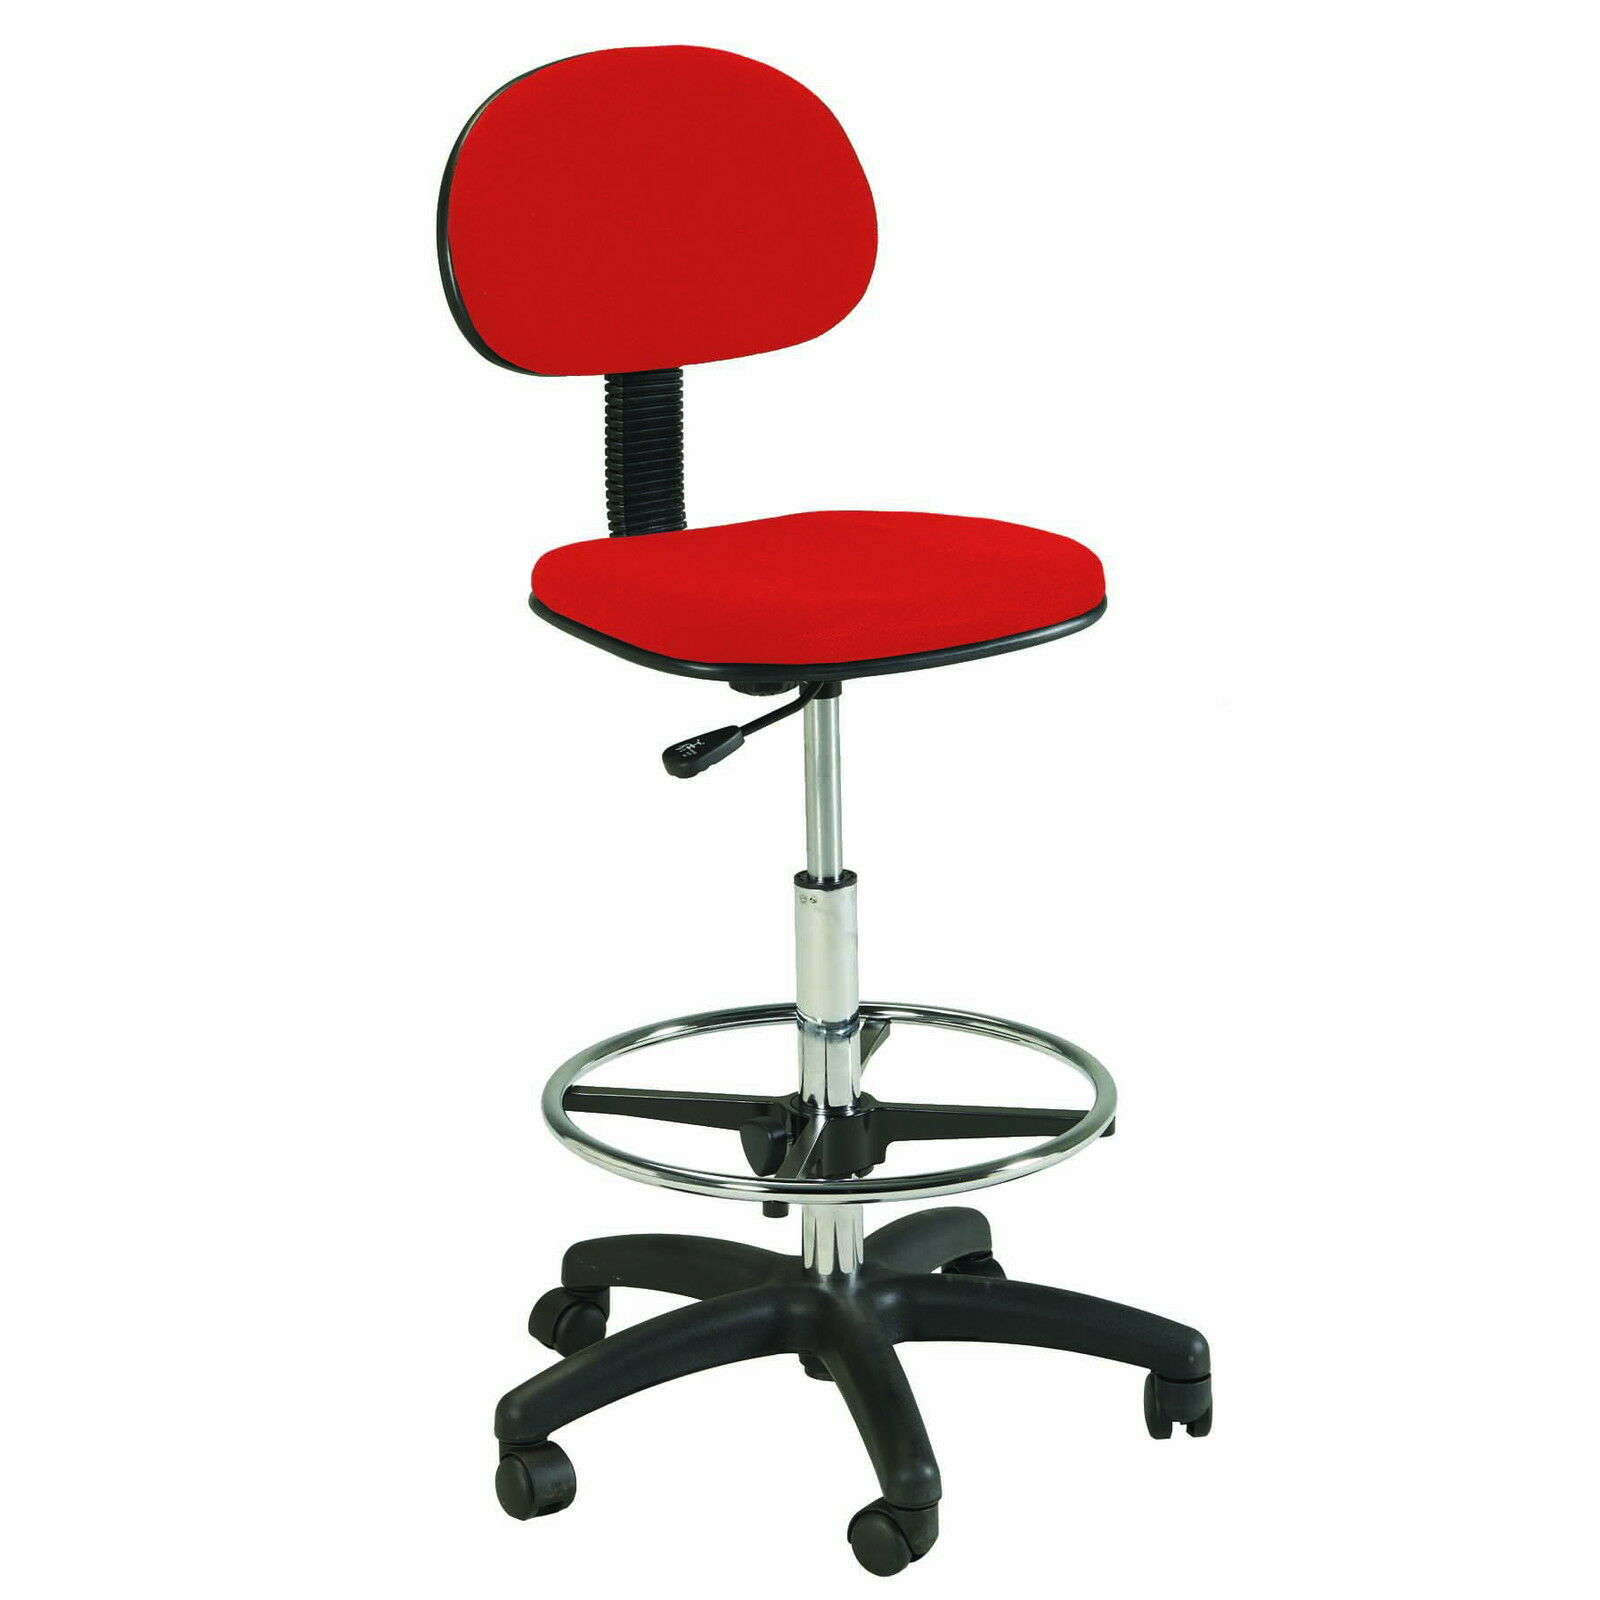 RED Counter Drafting Height Office Chair Stool : KGrHqZHJDEUHUMIpBQTezgy7w6057 from www.popscreen.com size 1600 x 1600 jpeg 84kB